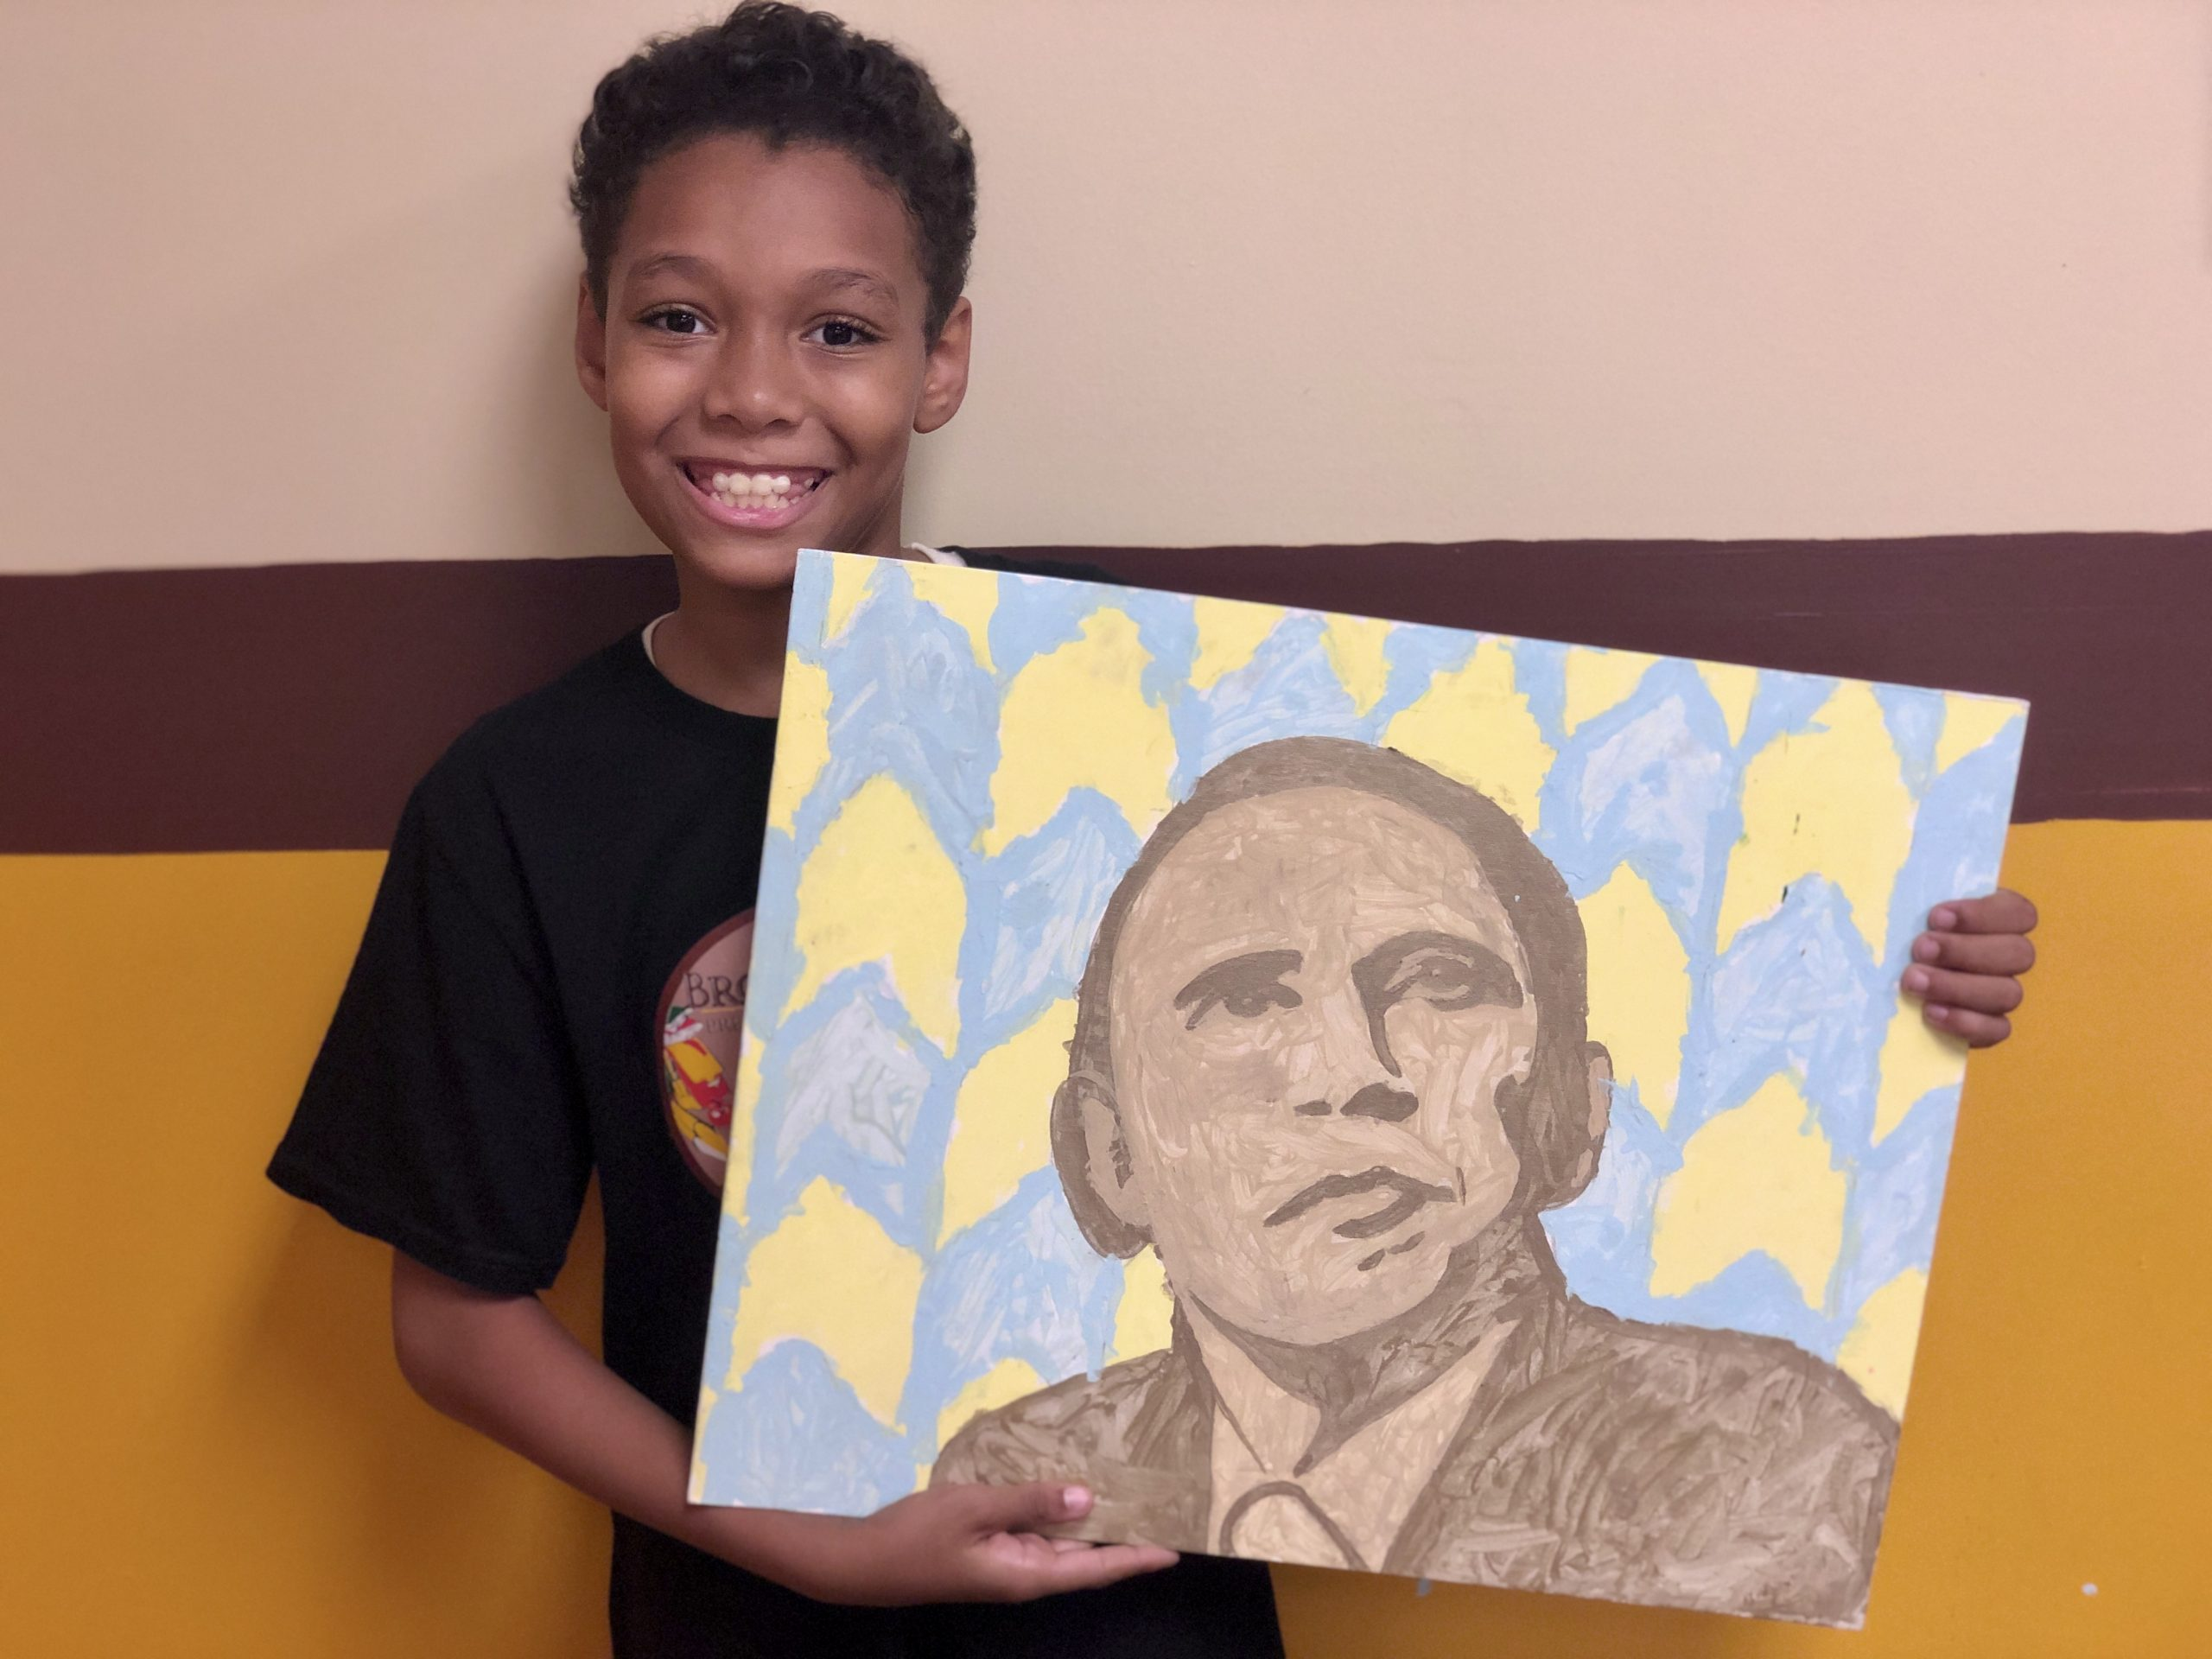 Barack-Obama-by-Ryan-Braswell